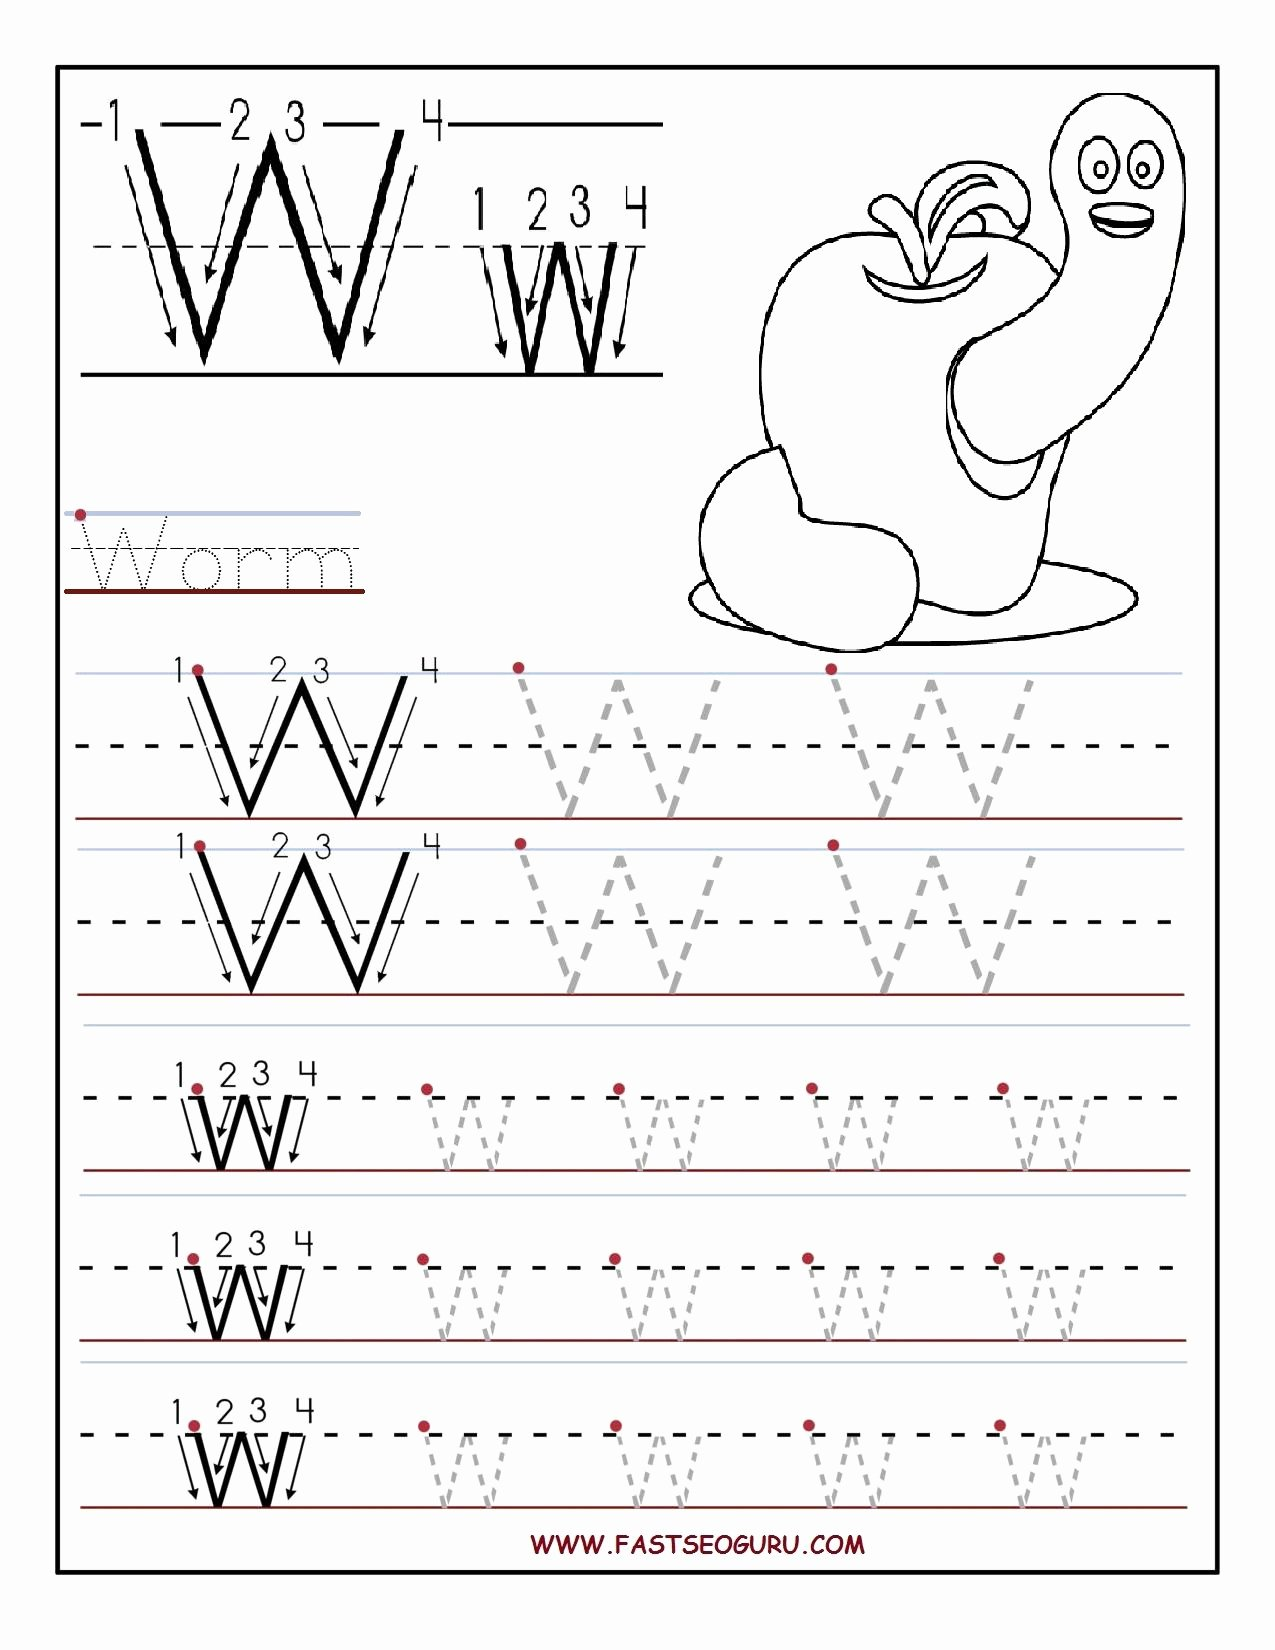 Worm Worksheets for Preschoolers Unique Free Printable Worm Worksheets